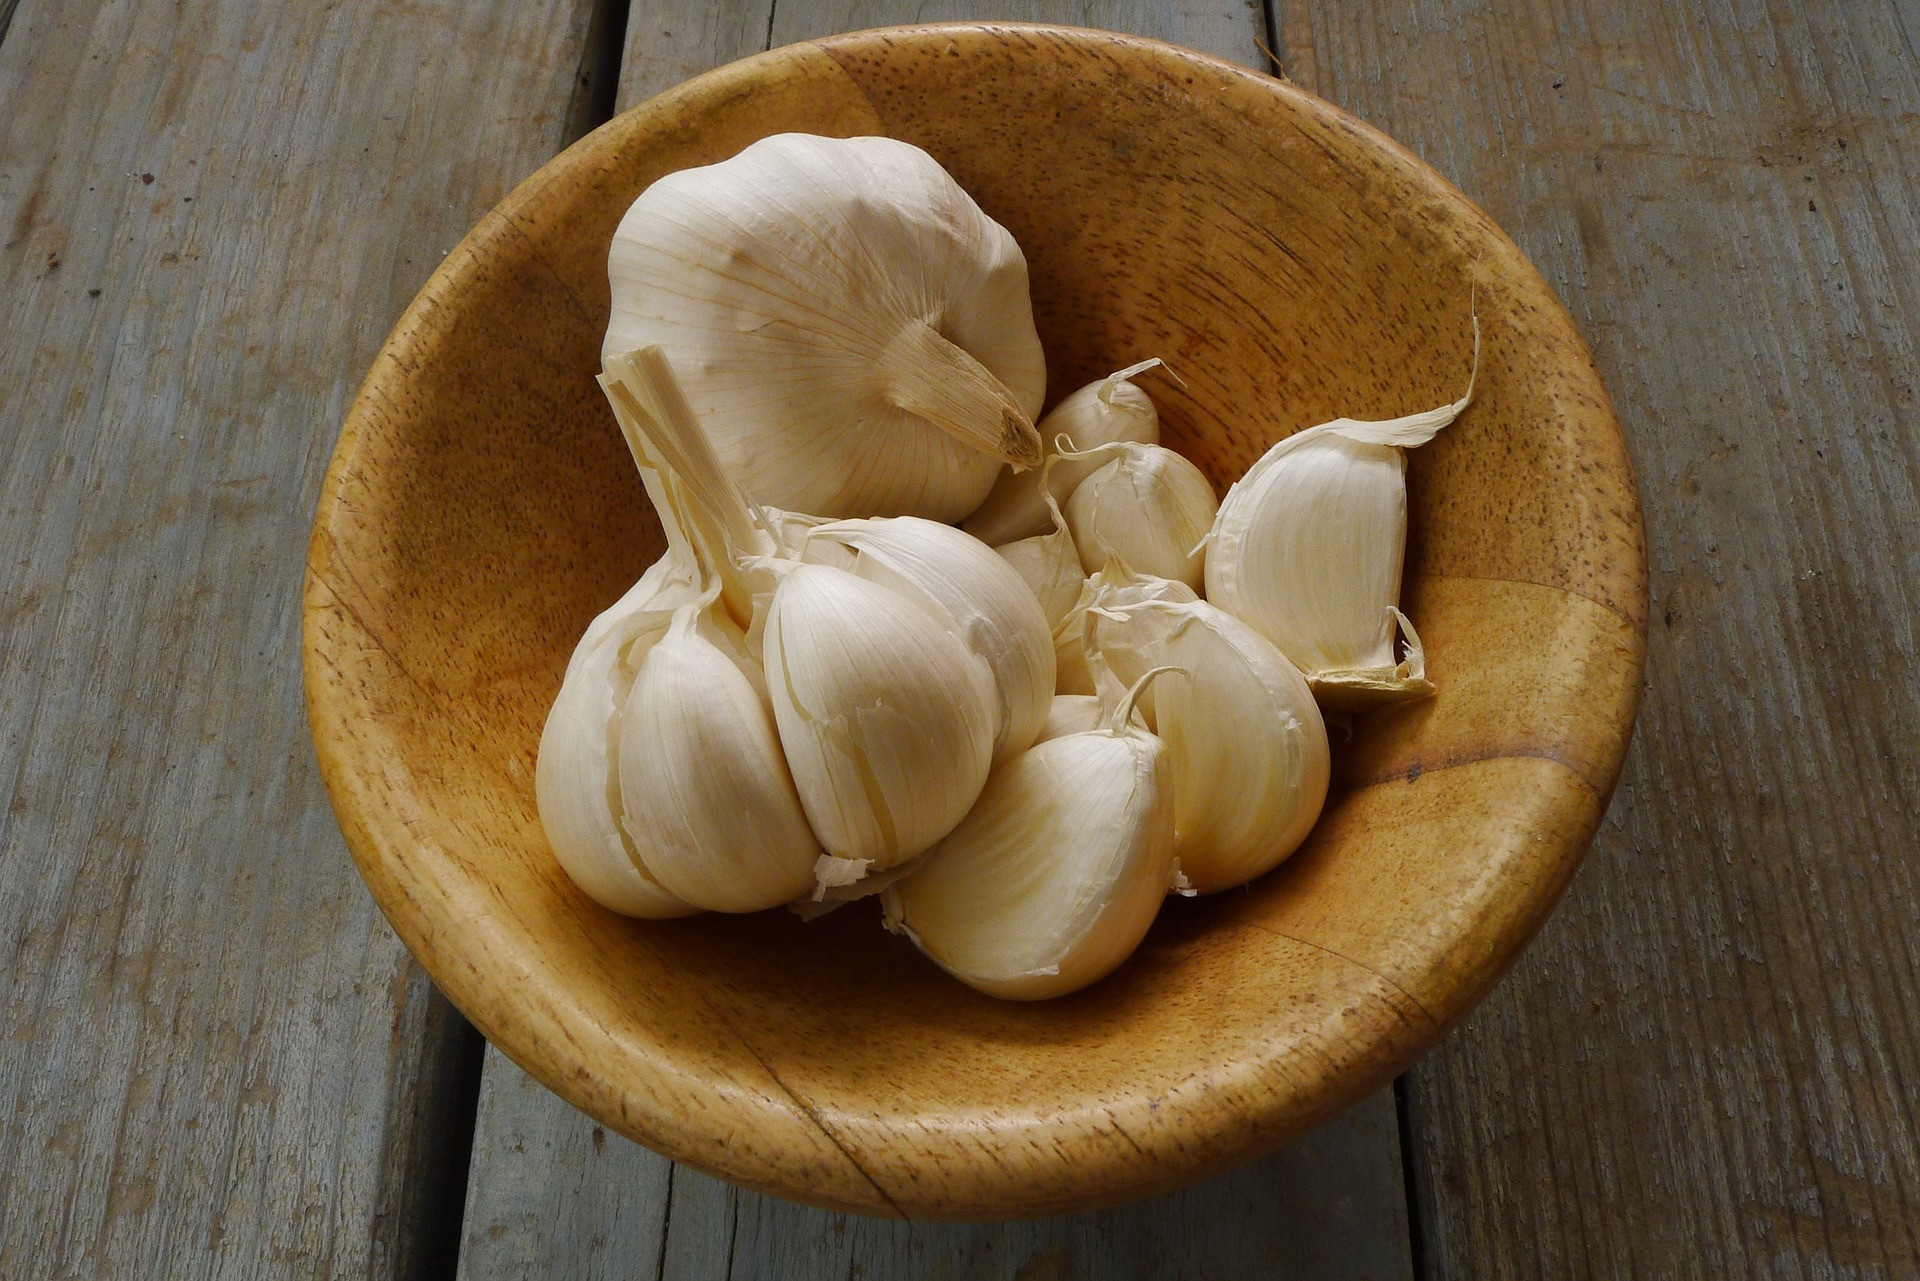 Wow, these are 9 benefits of consuming garlic for men, number 1 to increase stamina - JPNN.com